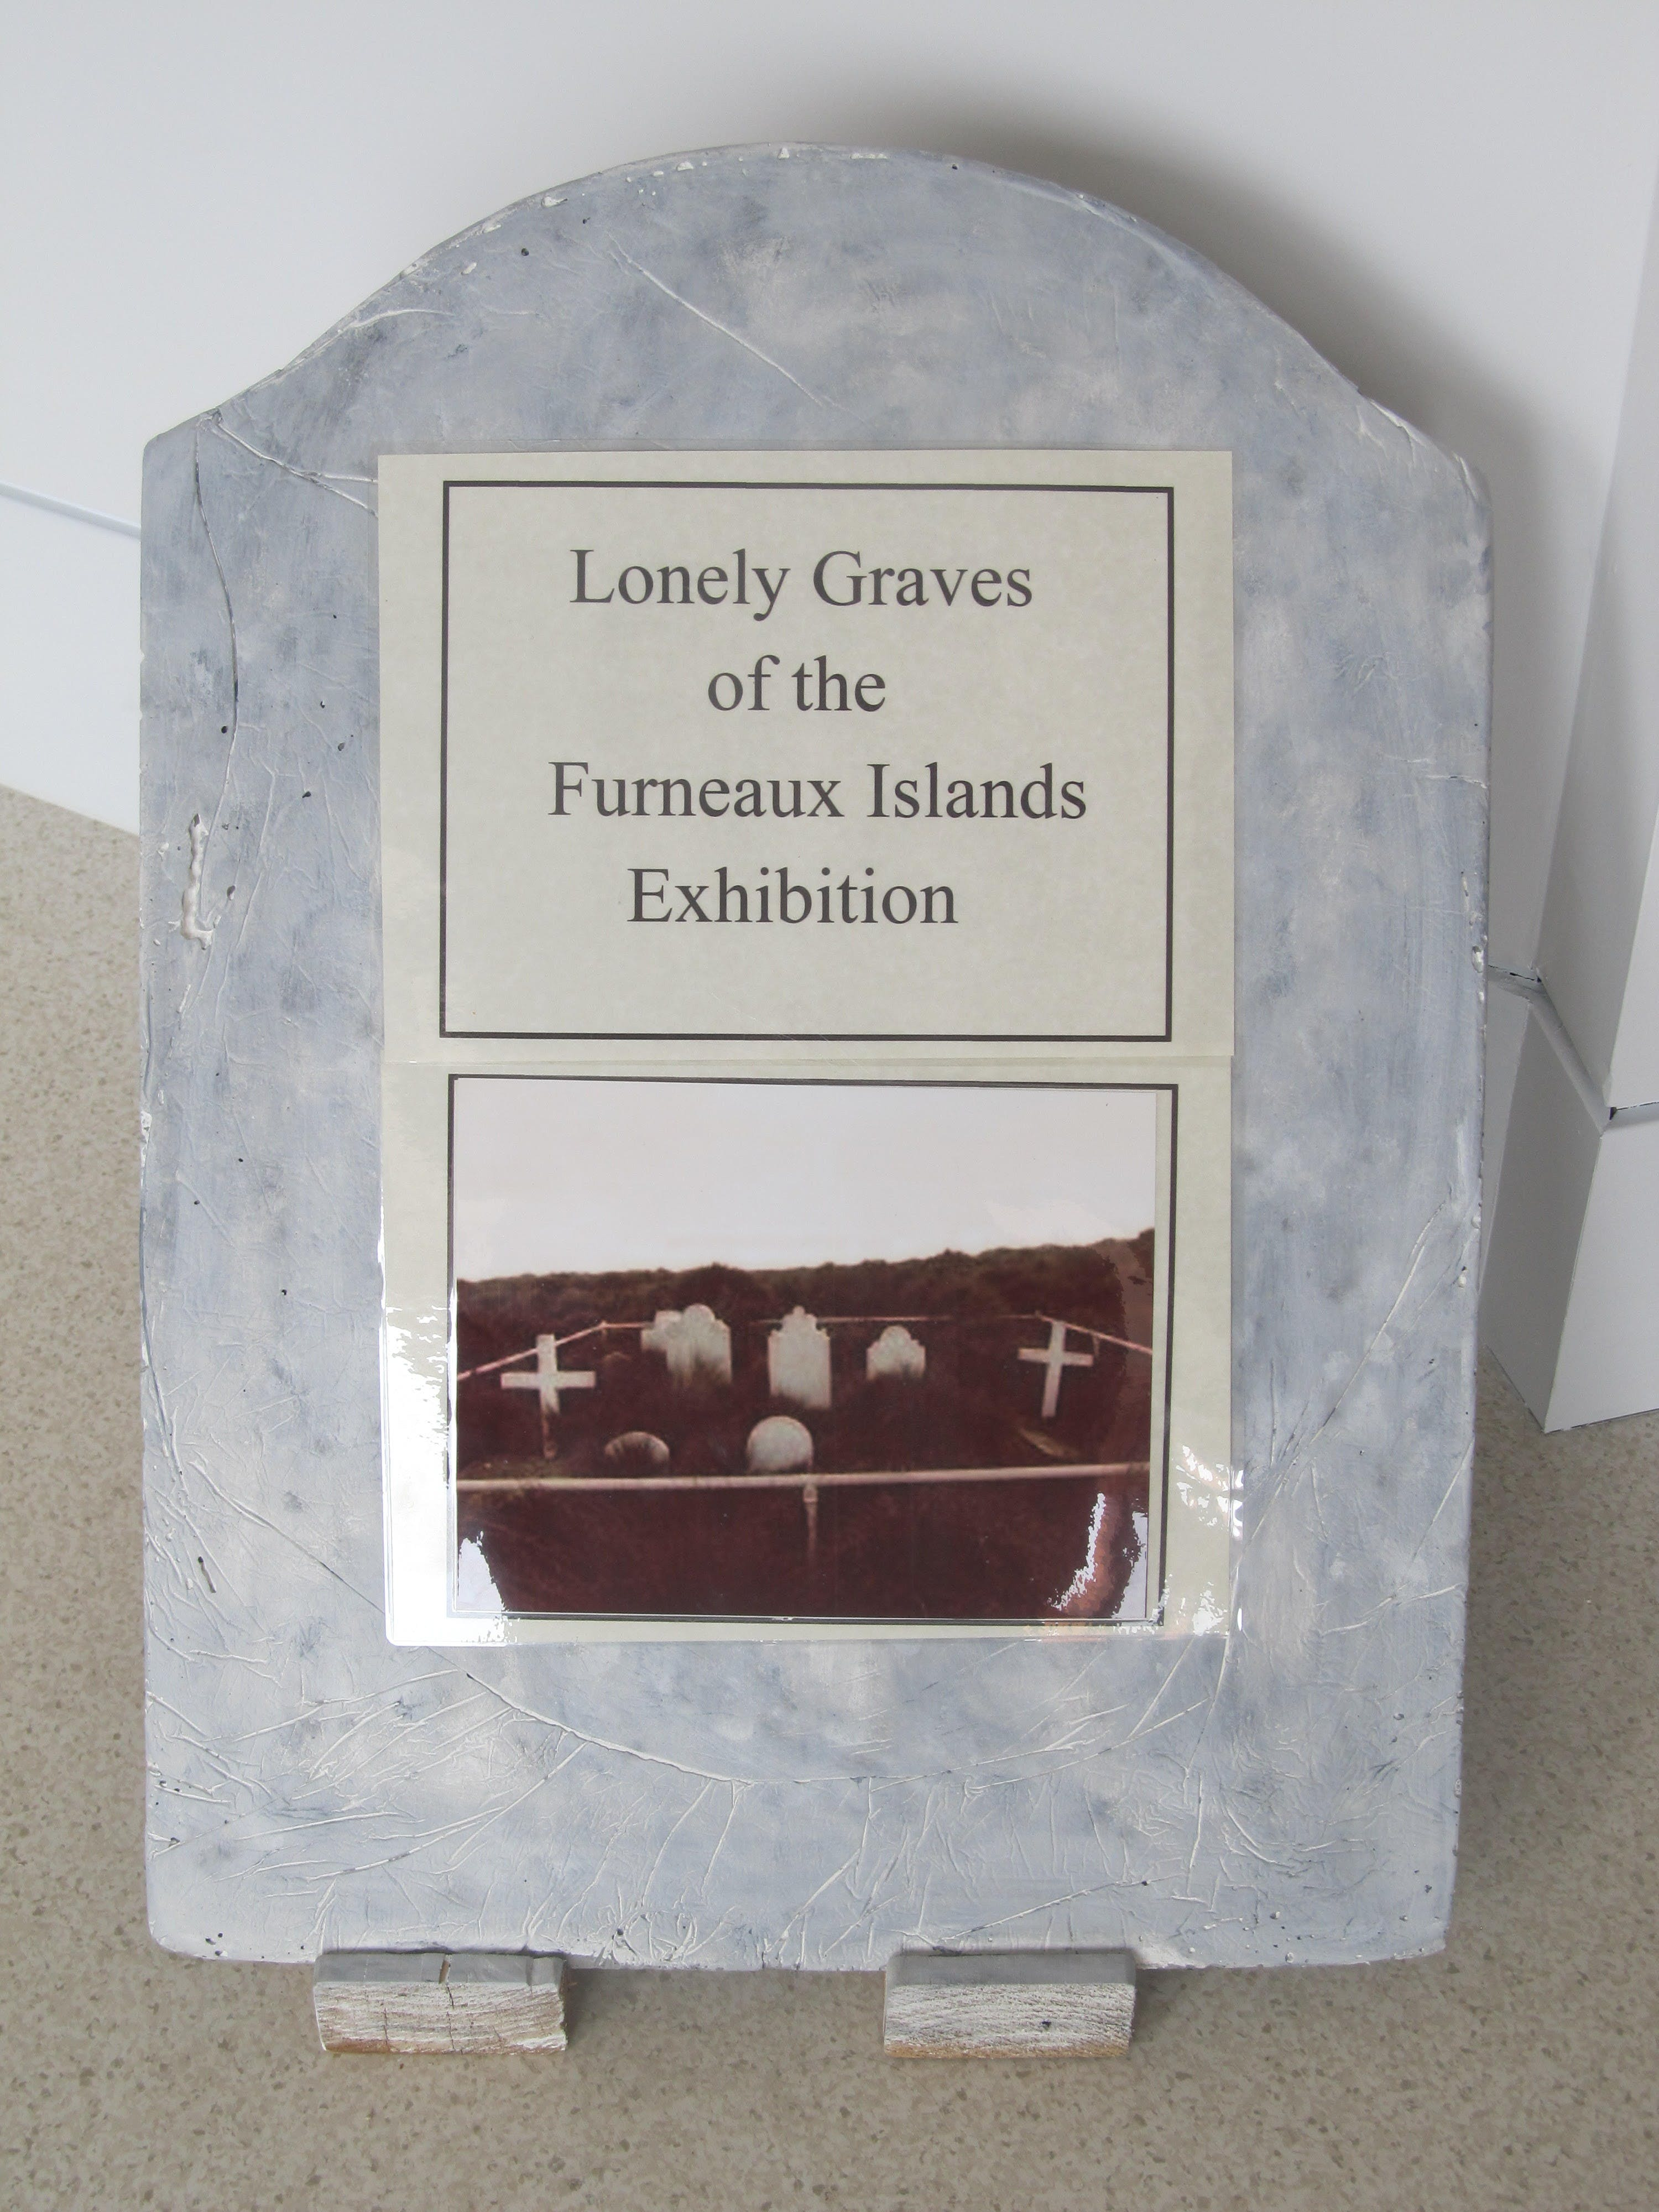 Lonely Graves of the Furneaux Islands Exhibition - Accommodation Sydney